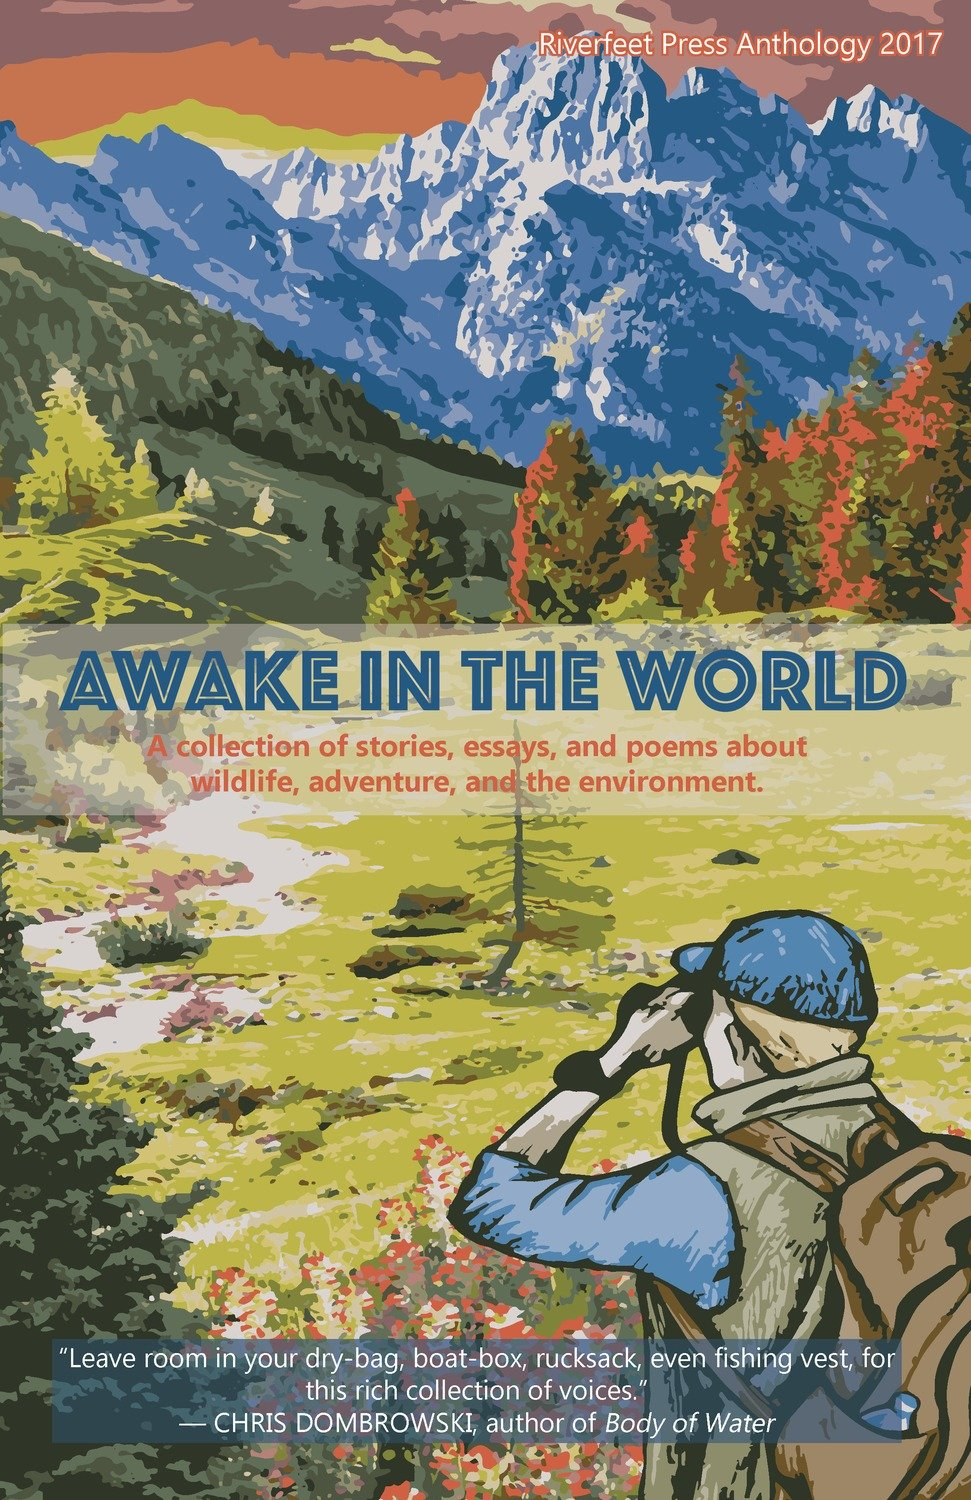 Awake in the World: Riverfeet Press Anthology